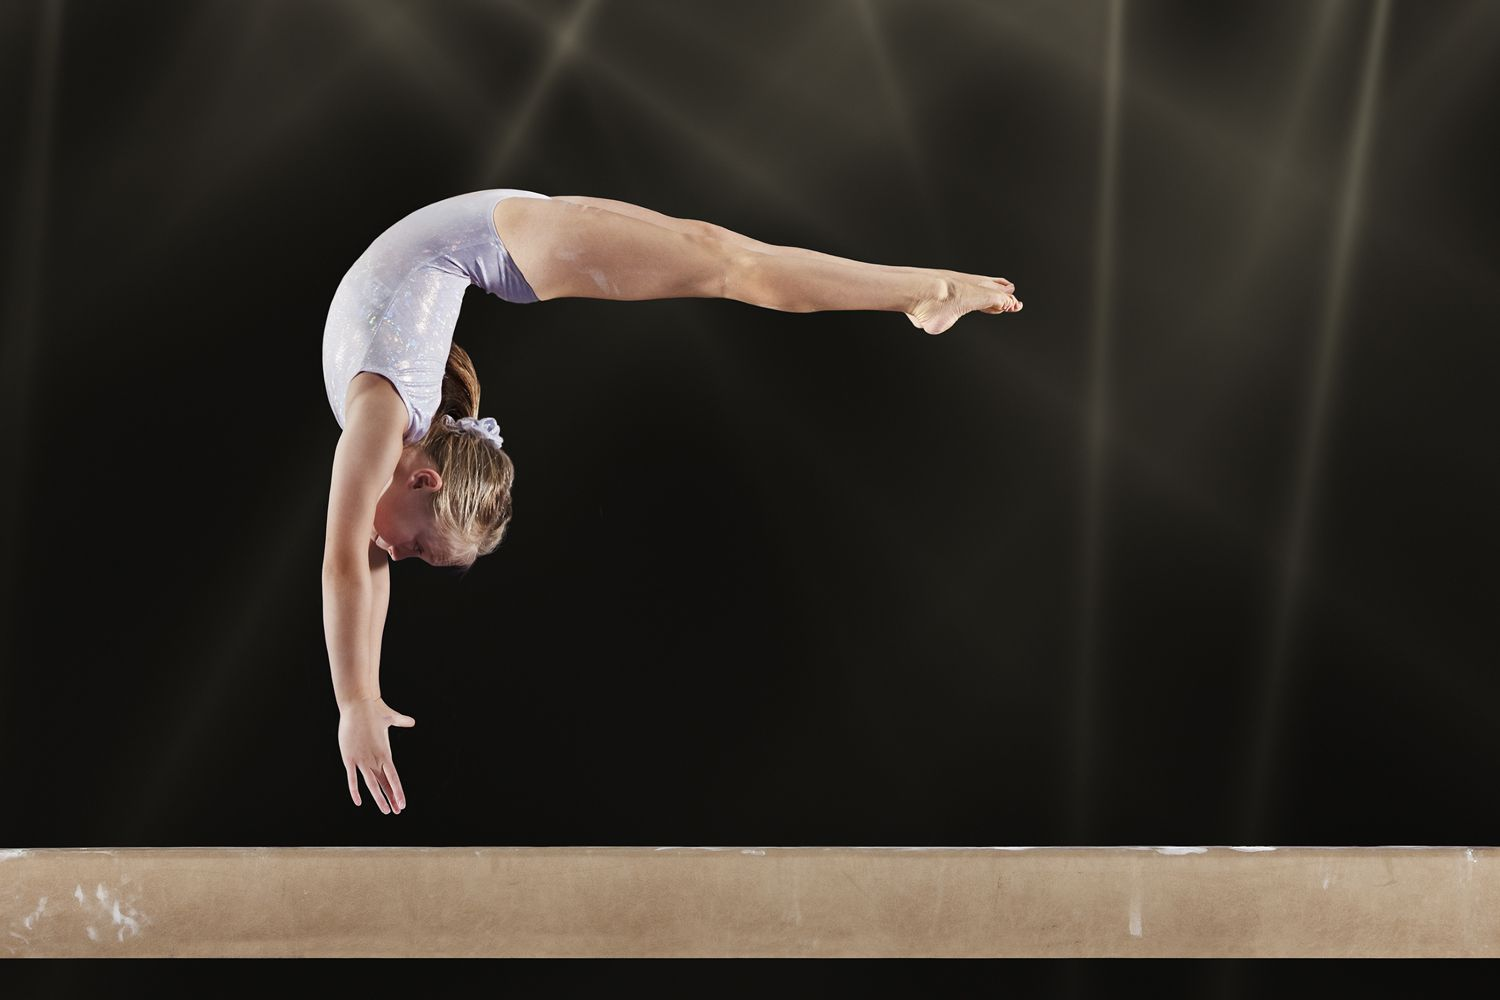 Eating disorders are common in gymnastics.